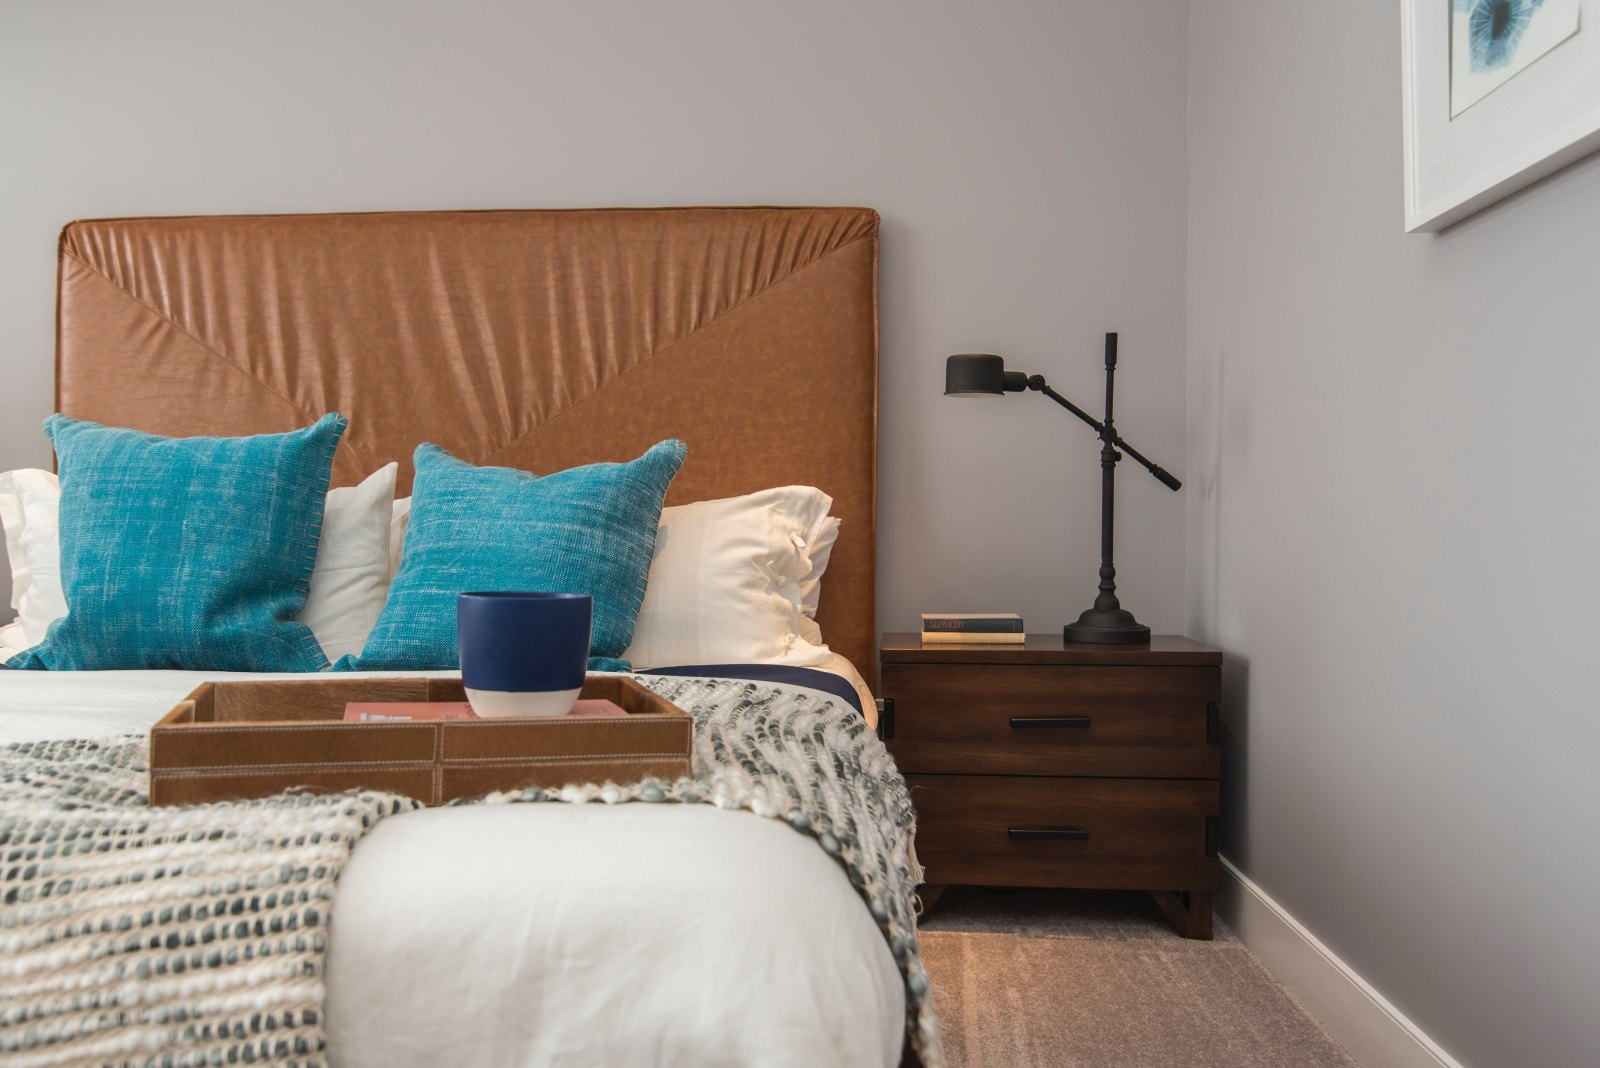 Making your dorm room look the best it can be is important. Make sure you stand out from the crowd with these unconventional decor ideas!